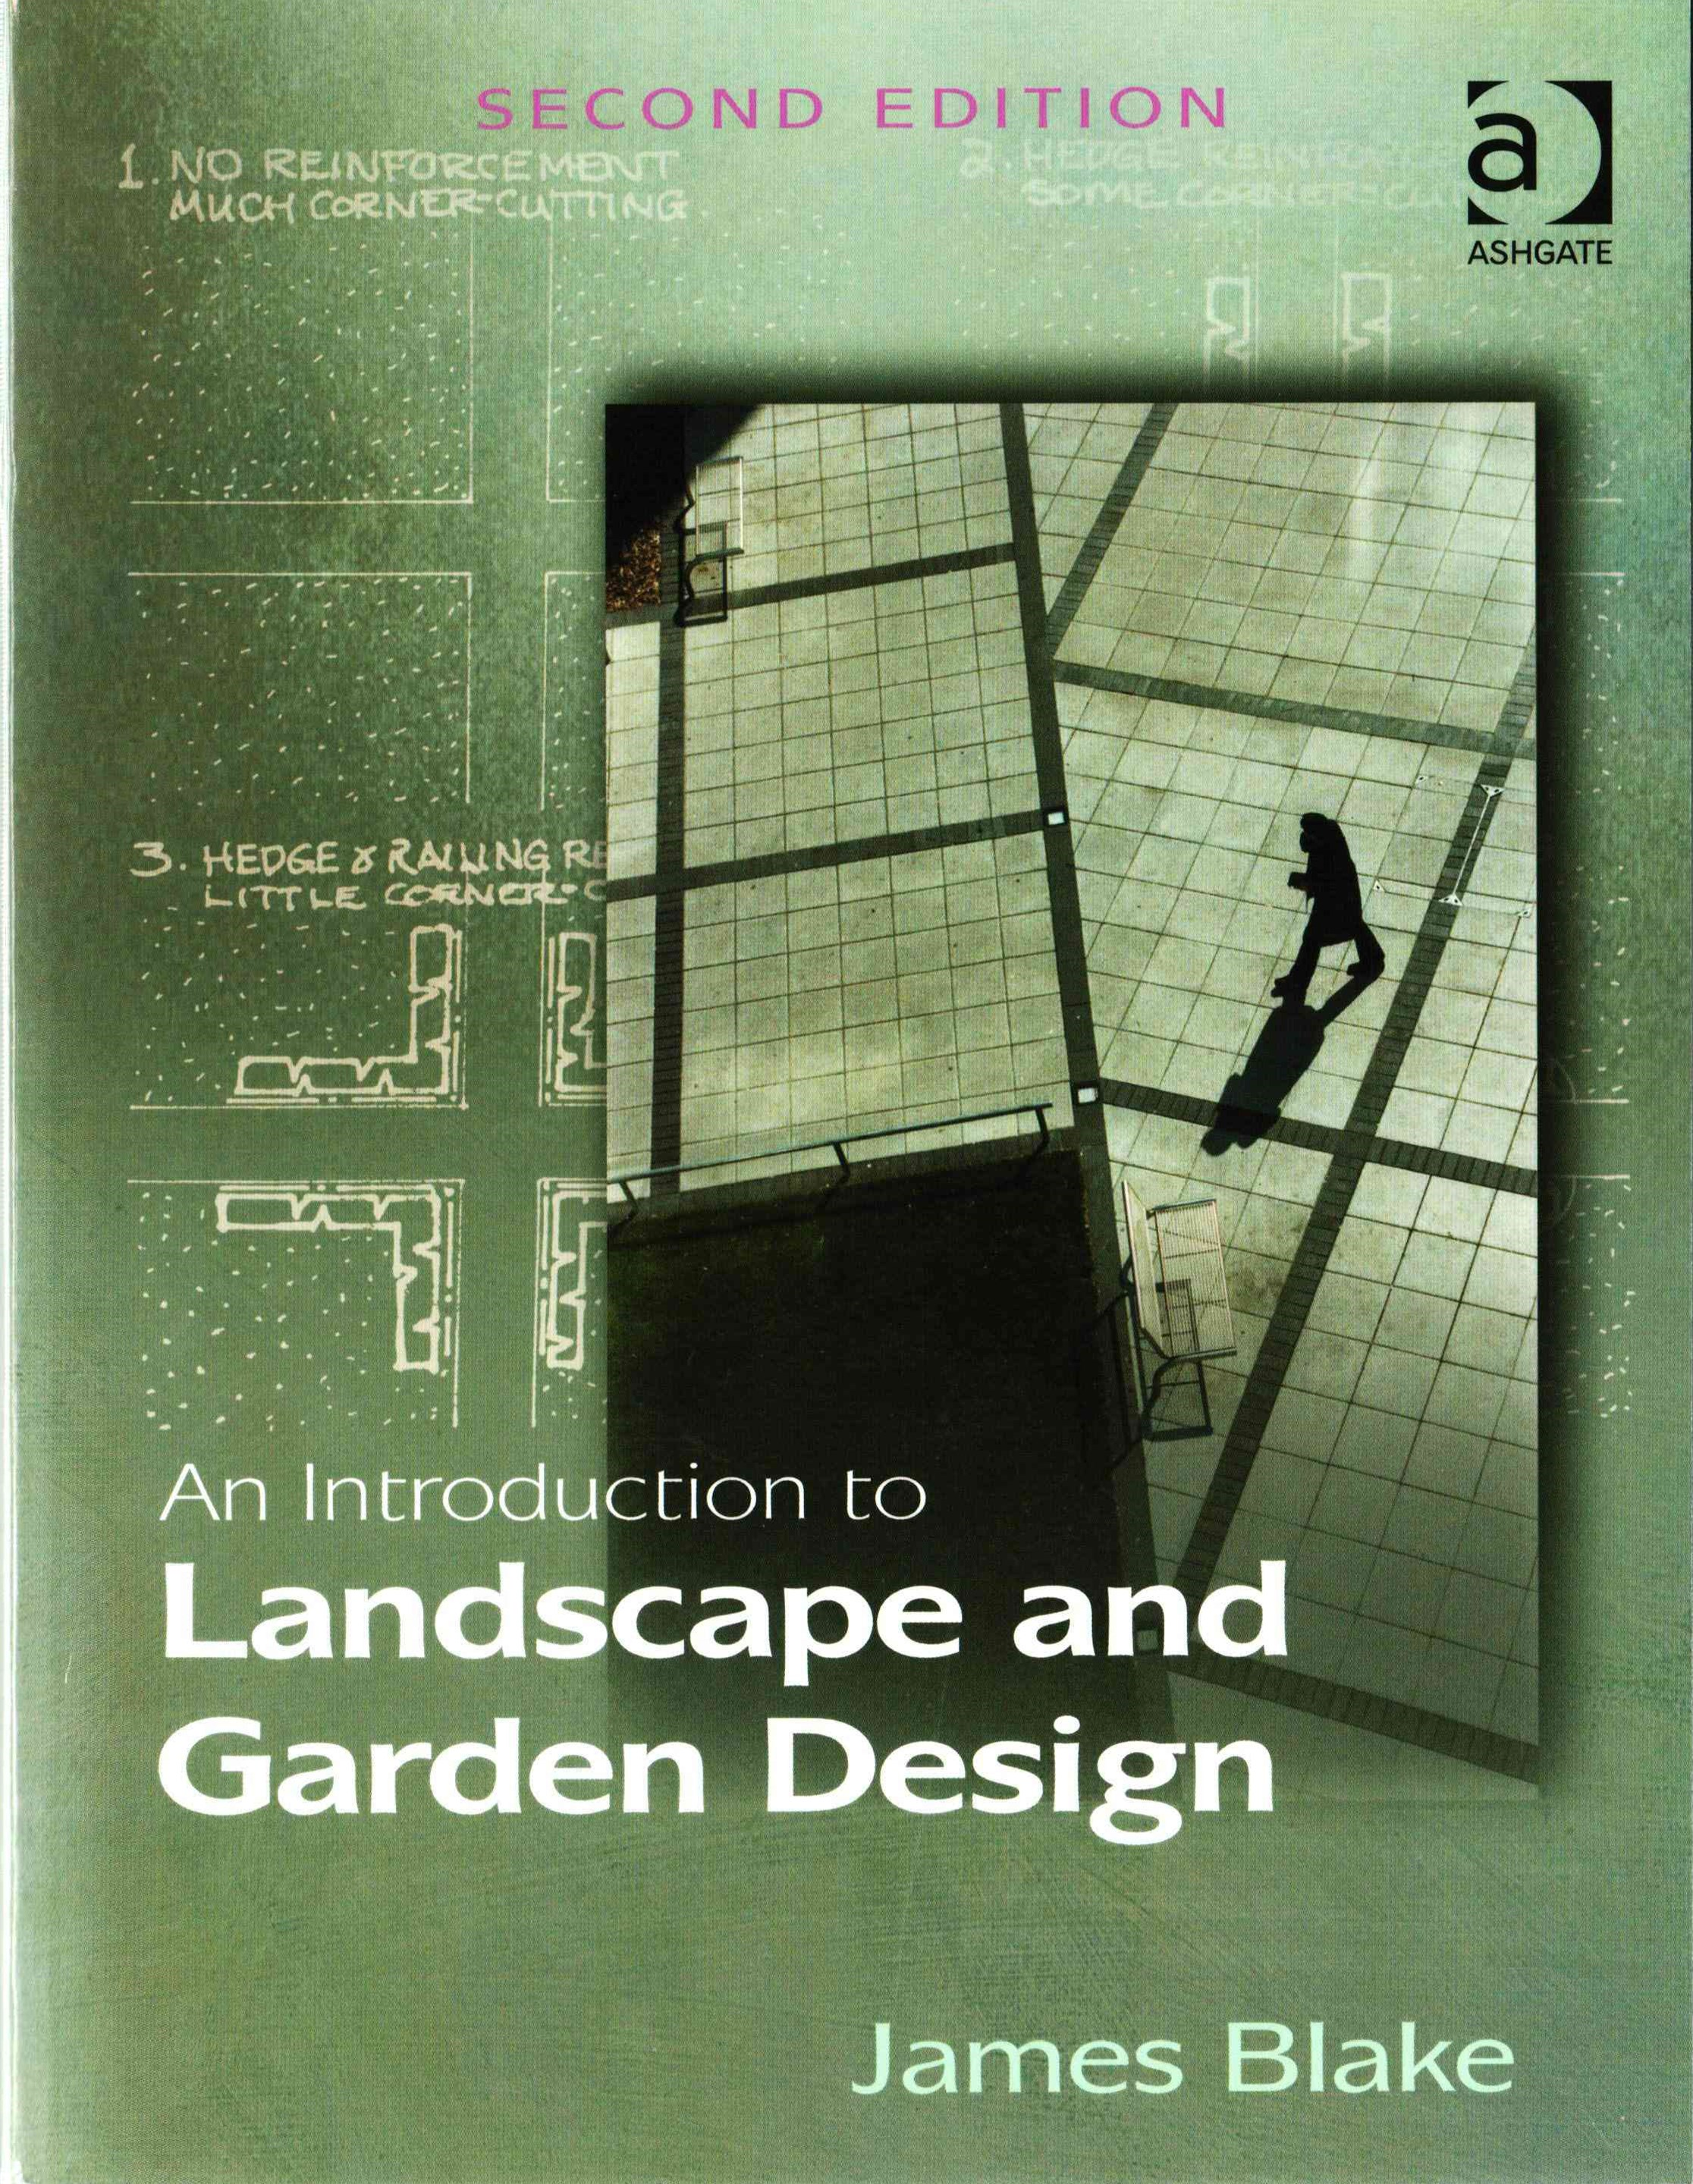 An Introduction to Landscape and Garden Design